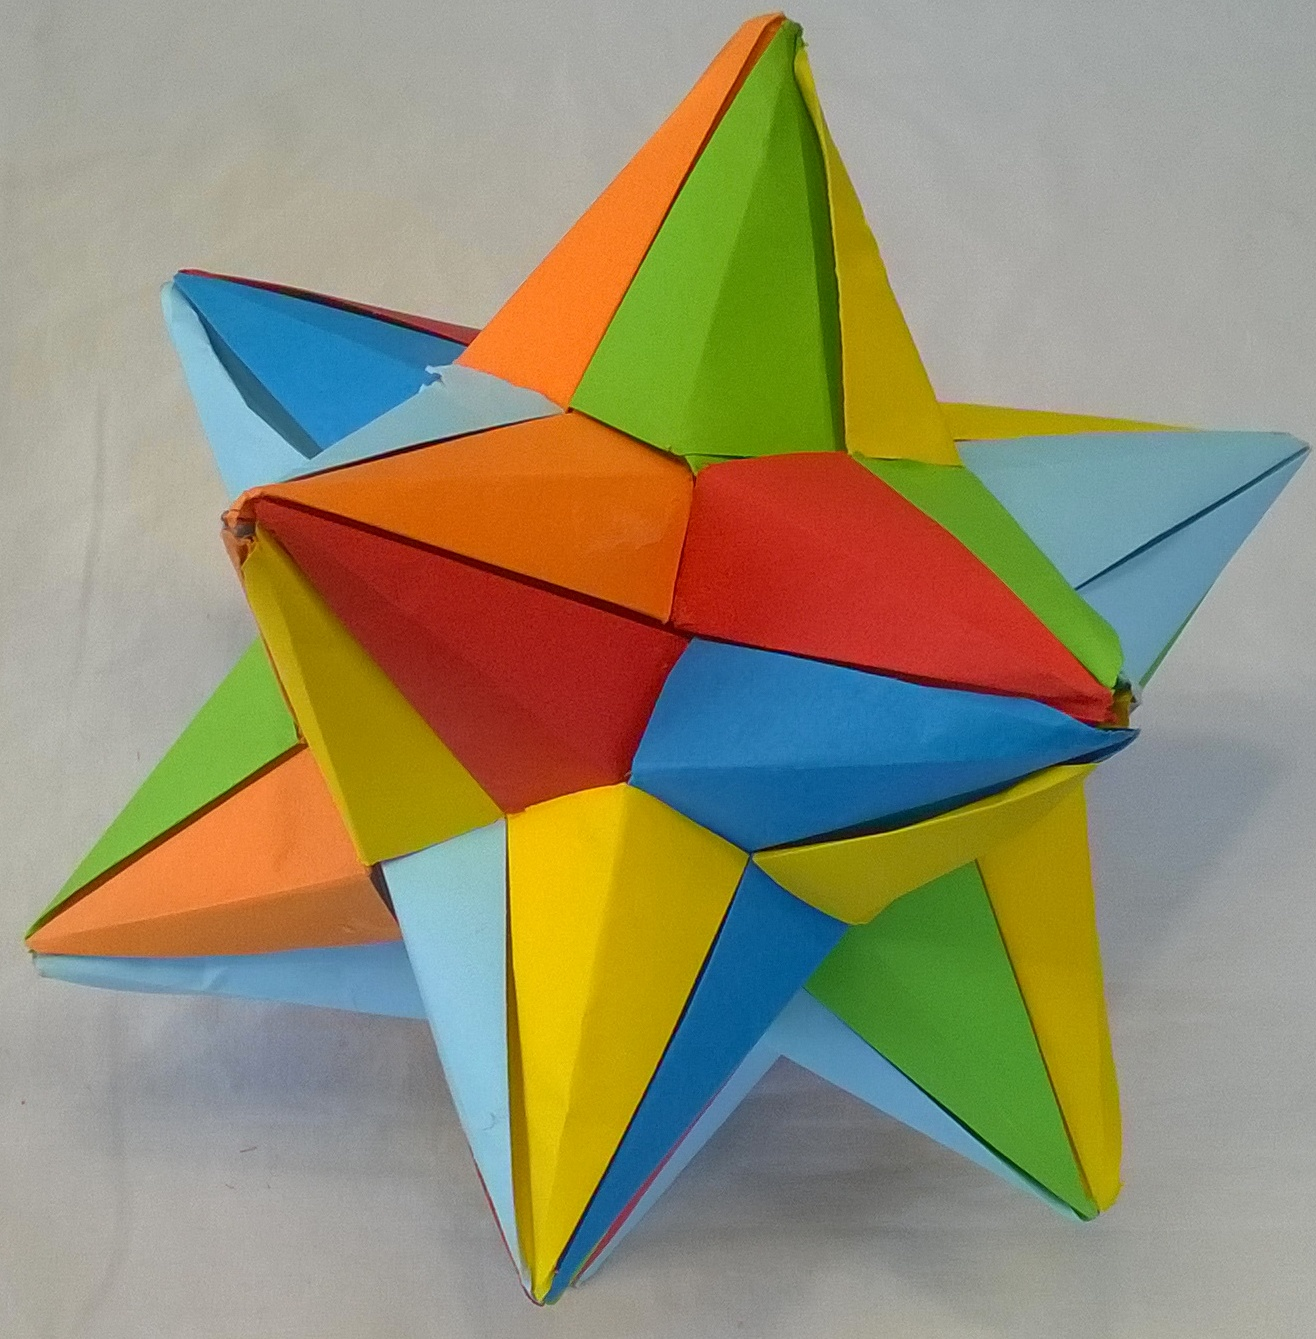 Origami 3d Shapes Instructions - photo#7